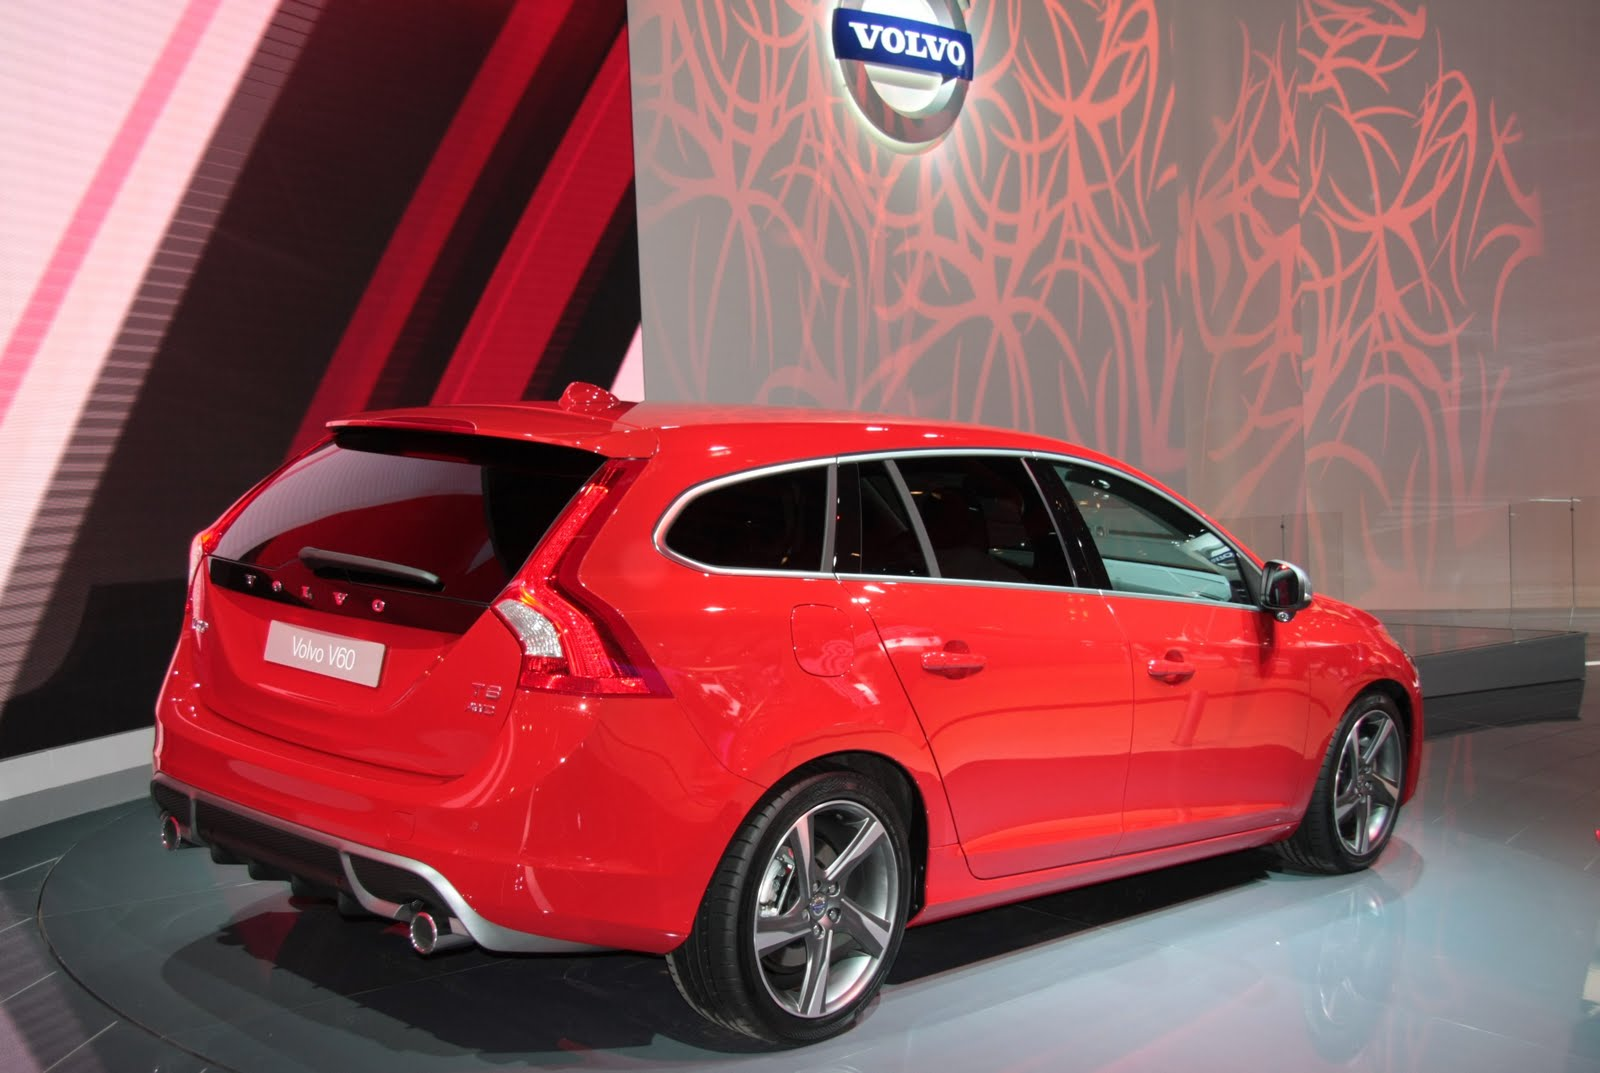 Garage Auto Paris Paris Motor Show 2010 Volvo V60 Live More Aesthetic Than Practical